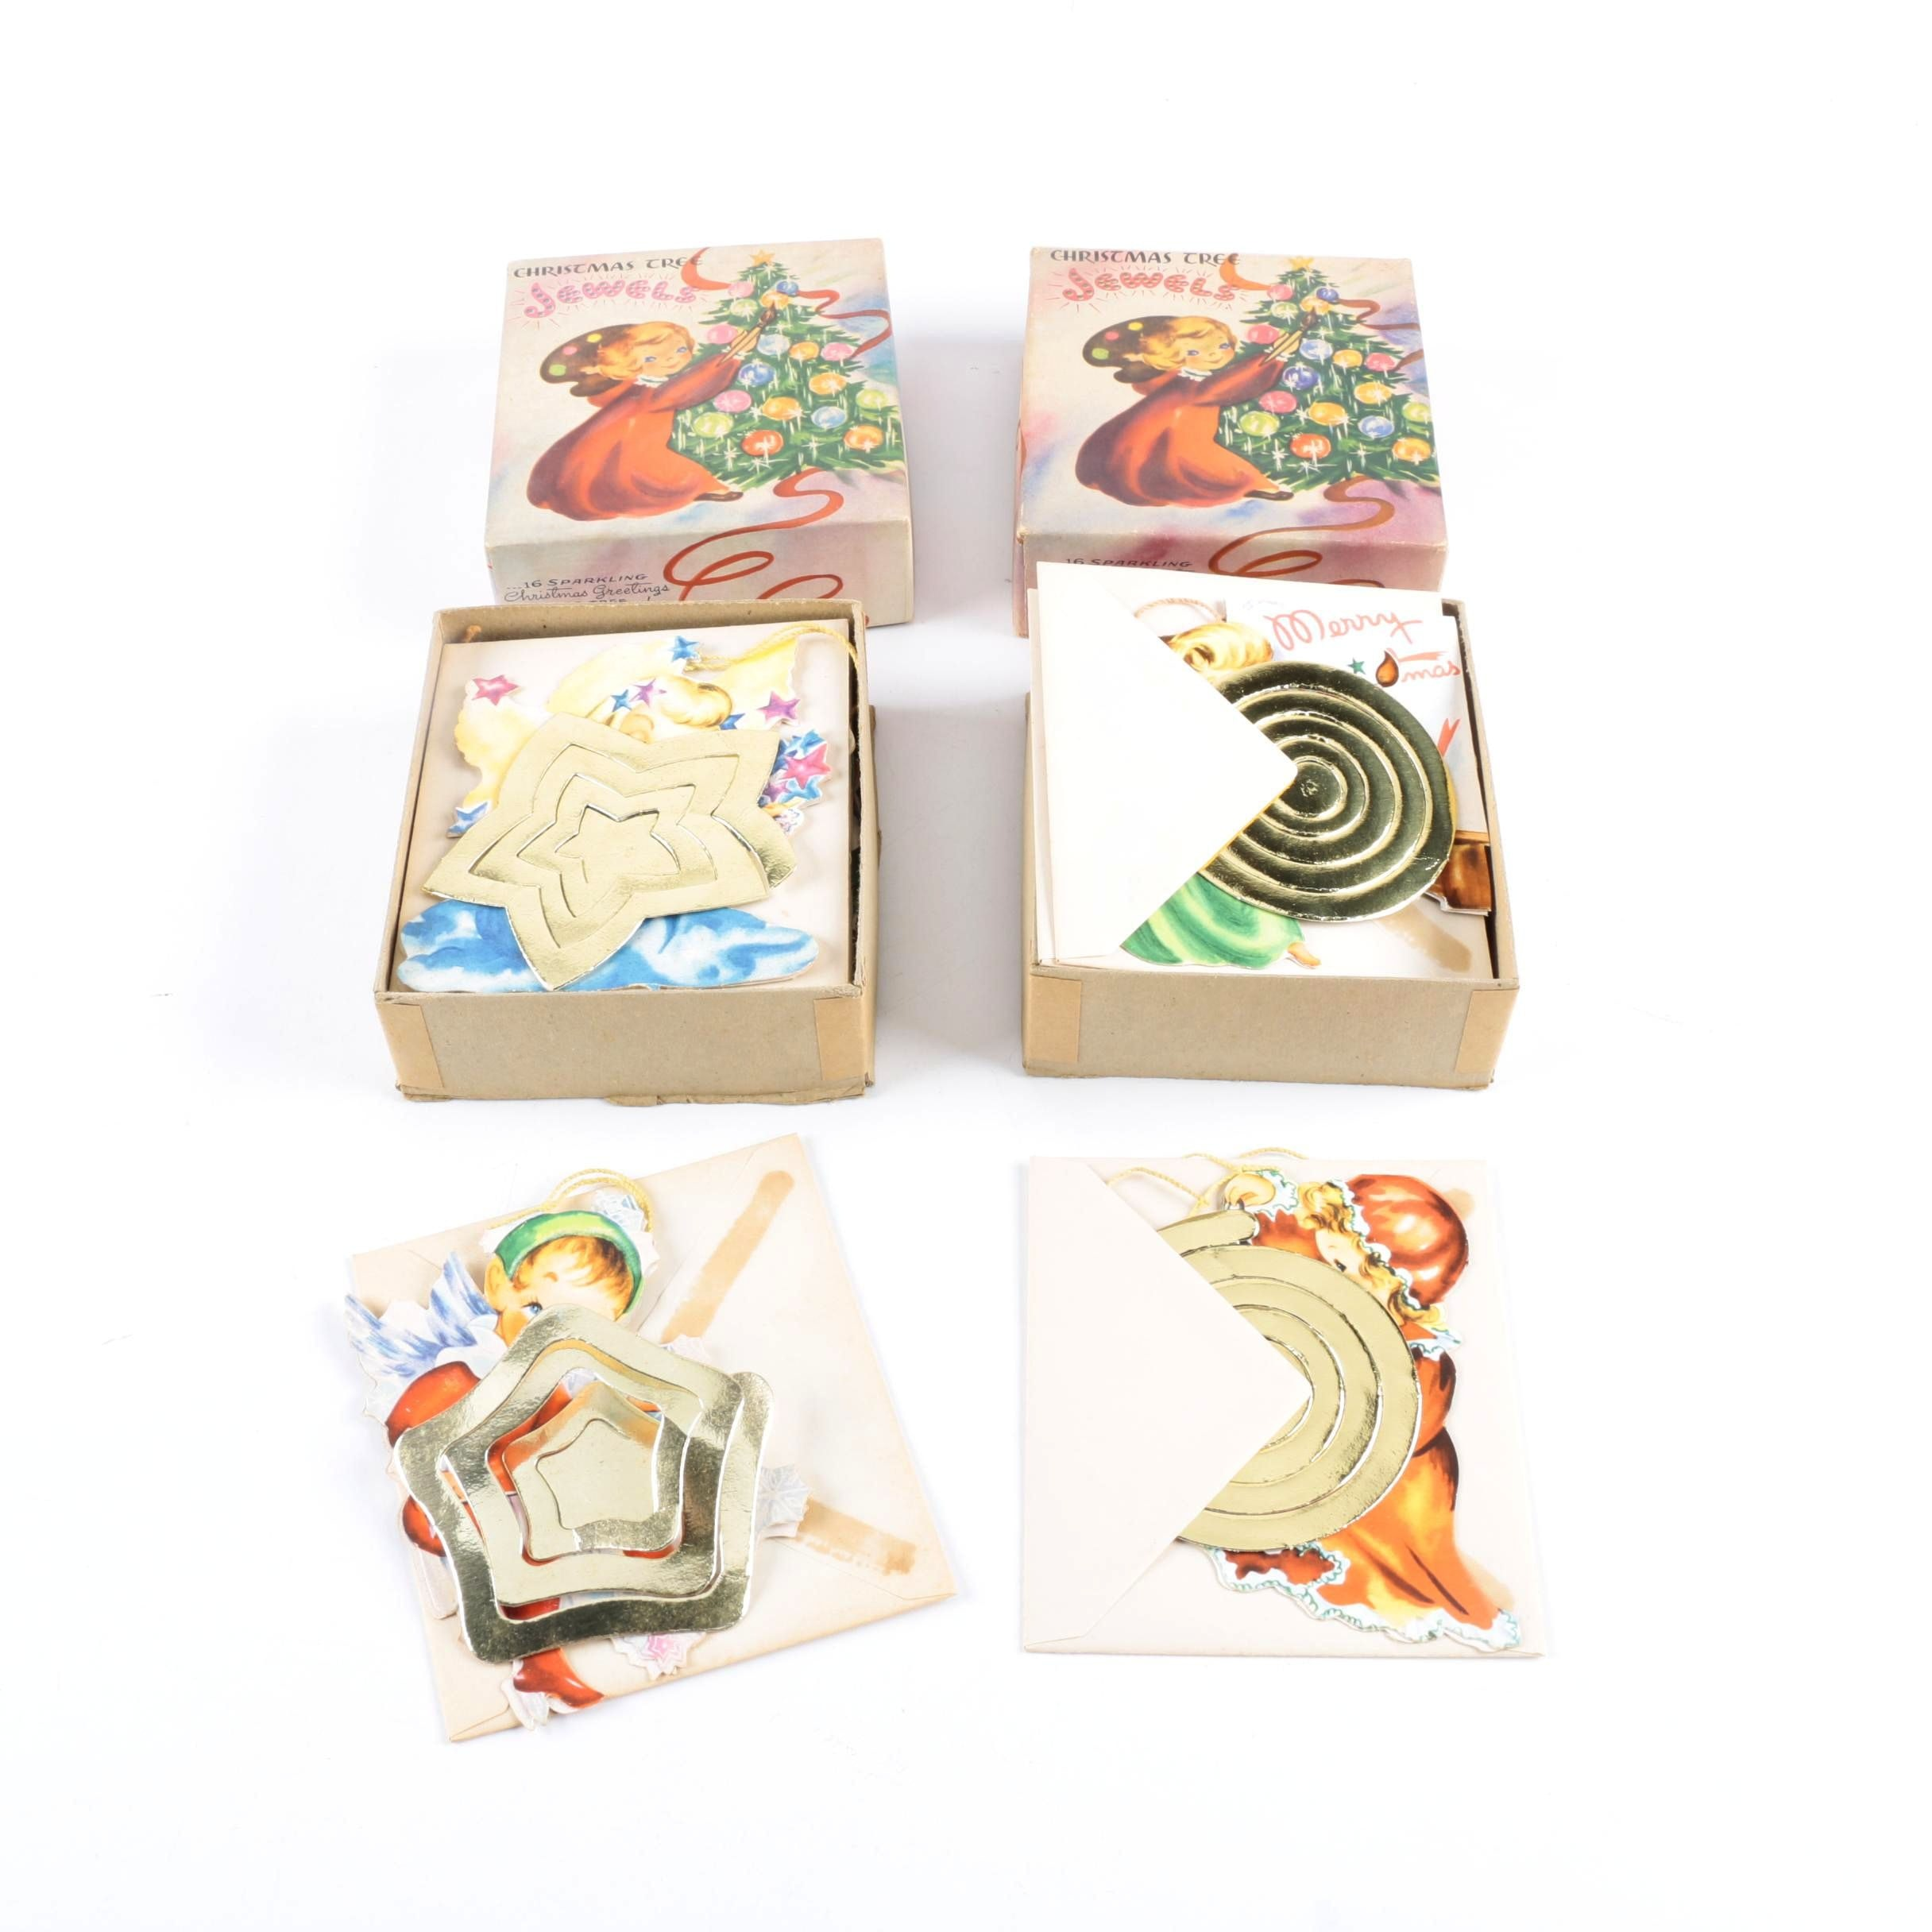 Vintage Christmas Greeting Cards with Tree Ornaments